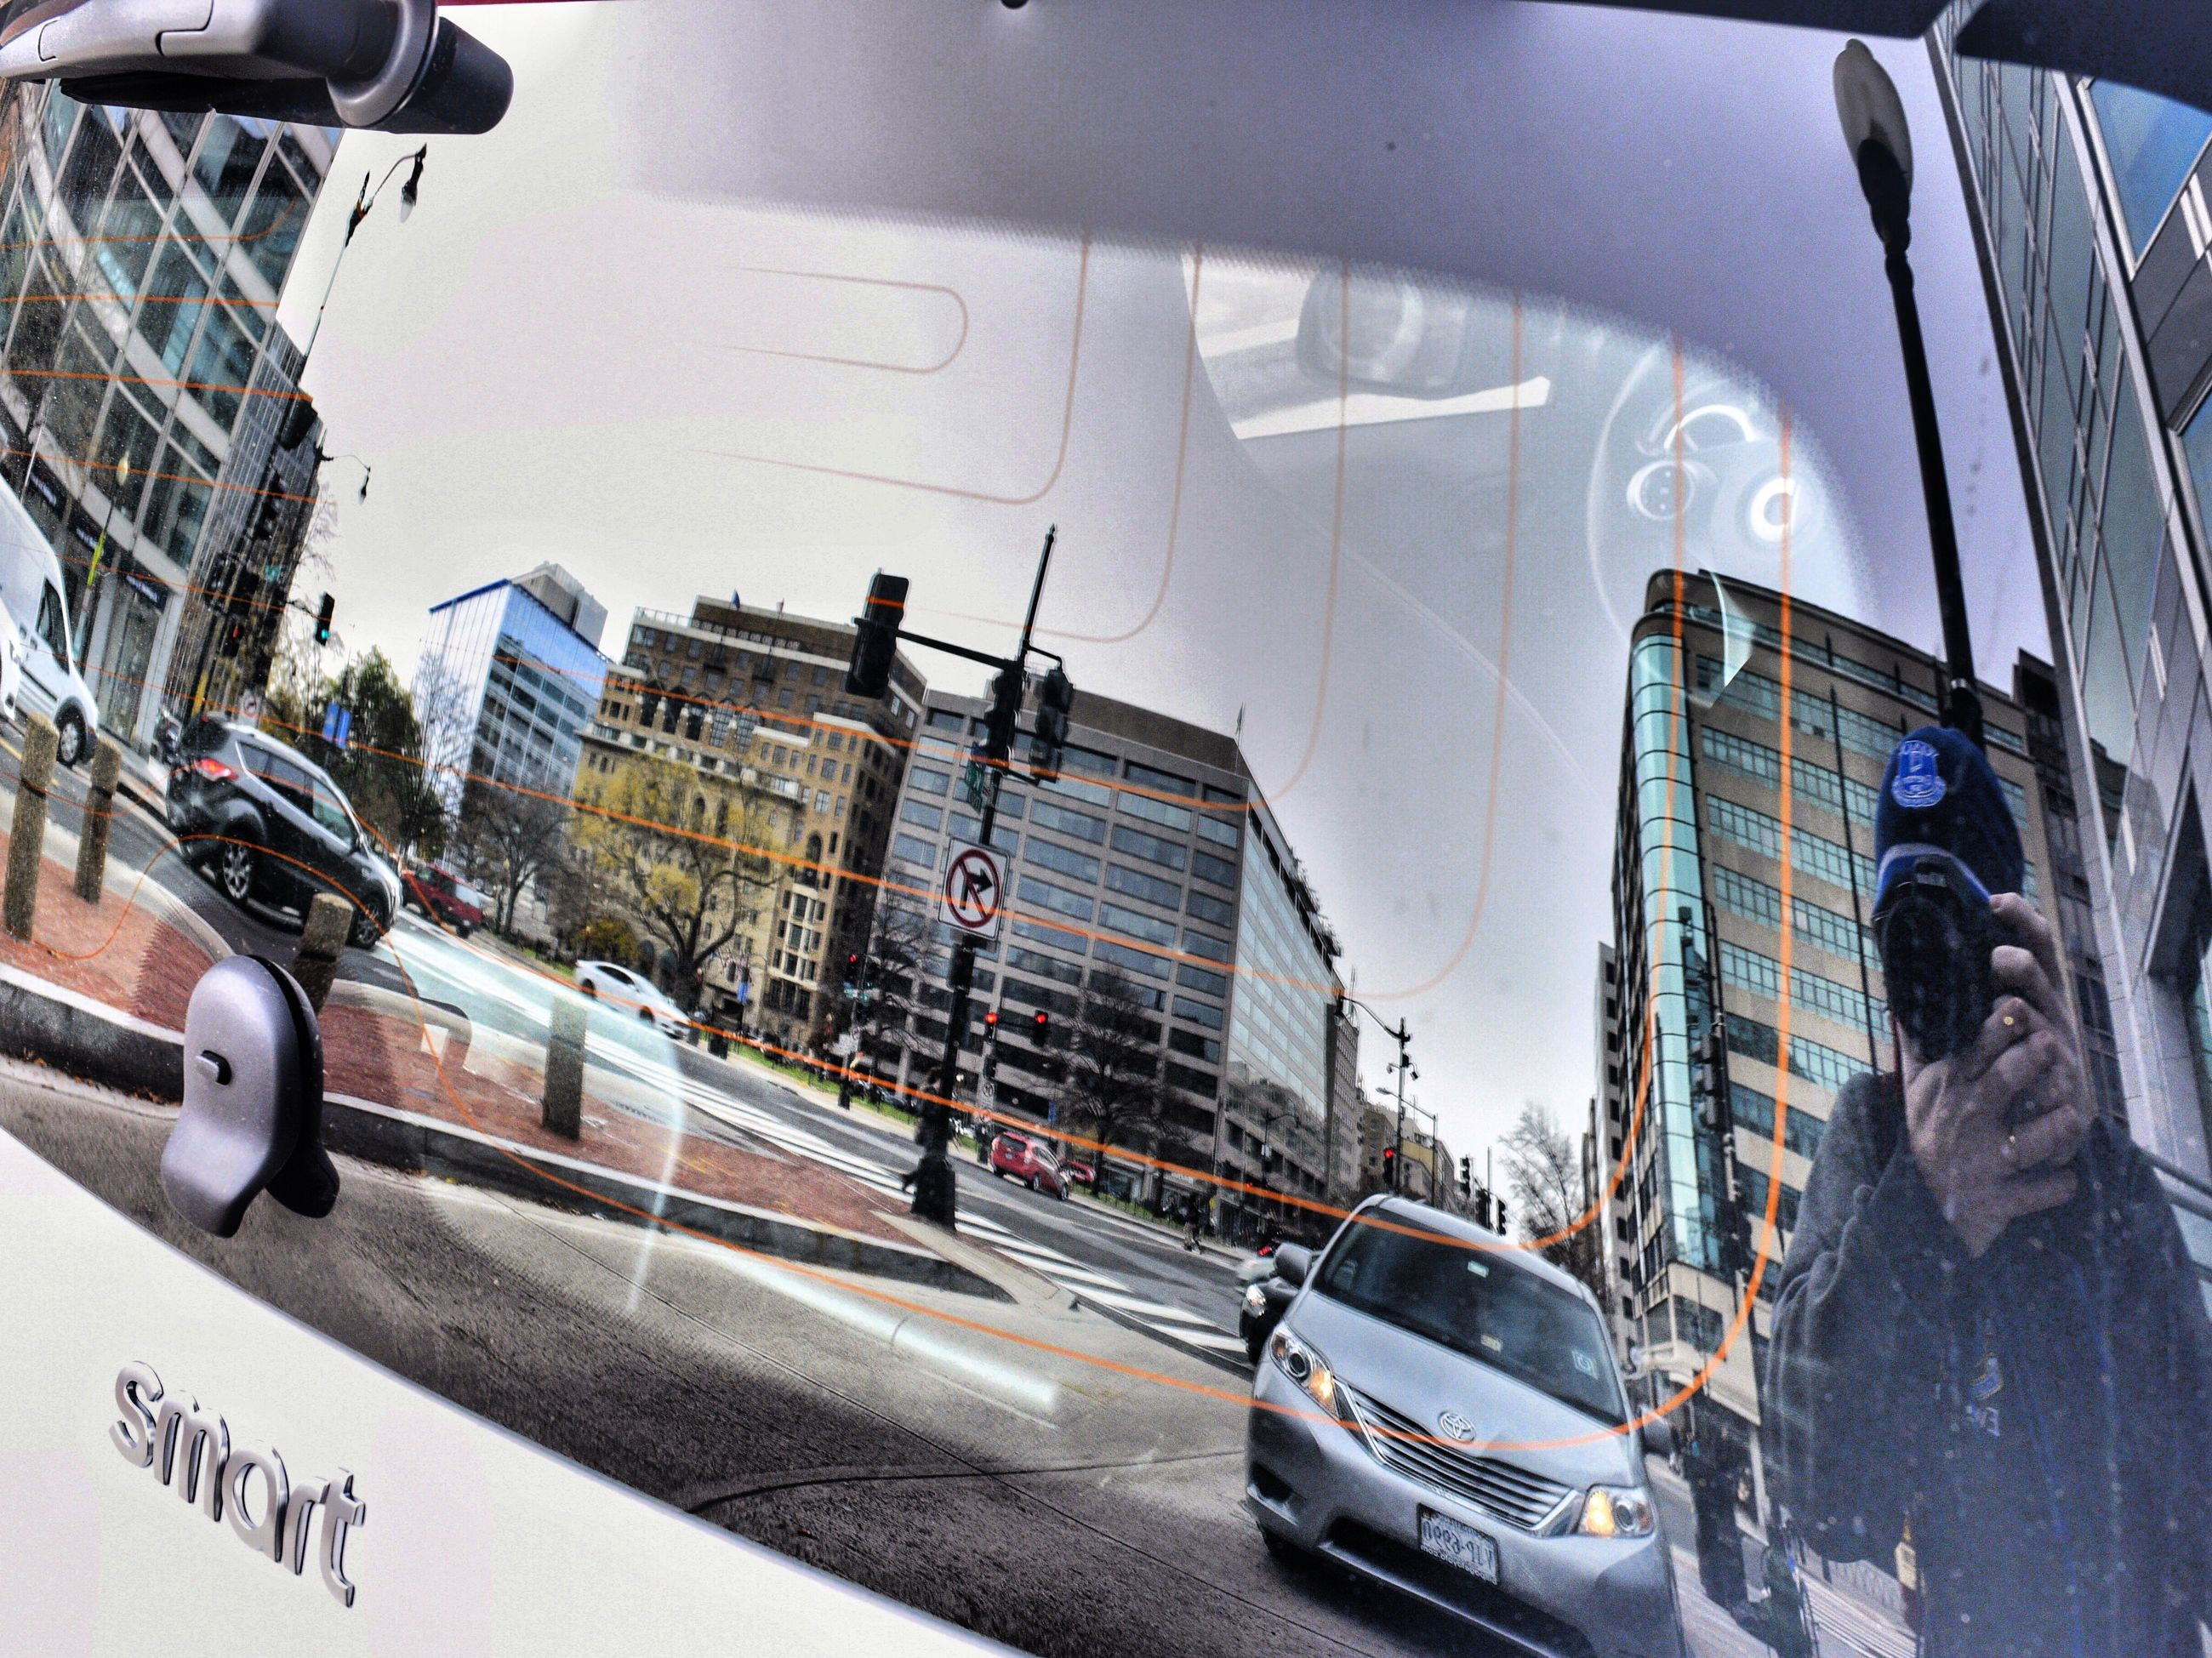 building exterior, built structure, architecture, city, street, transportation, car, land vehicle, road, outdoors, city life, day, sky, real people, men, one person, skyscraper, people